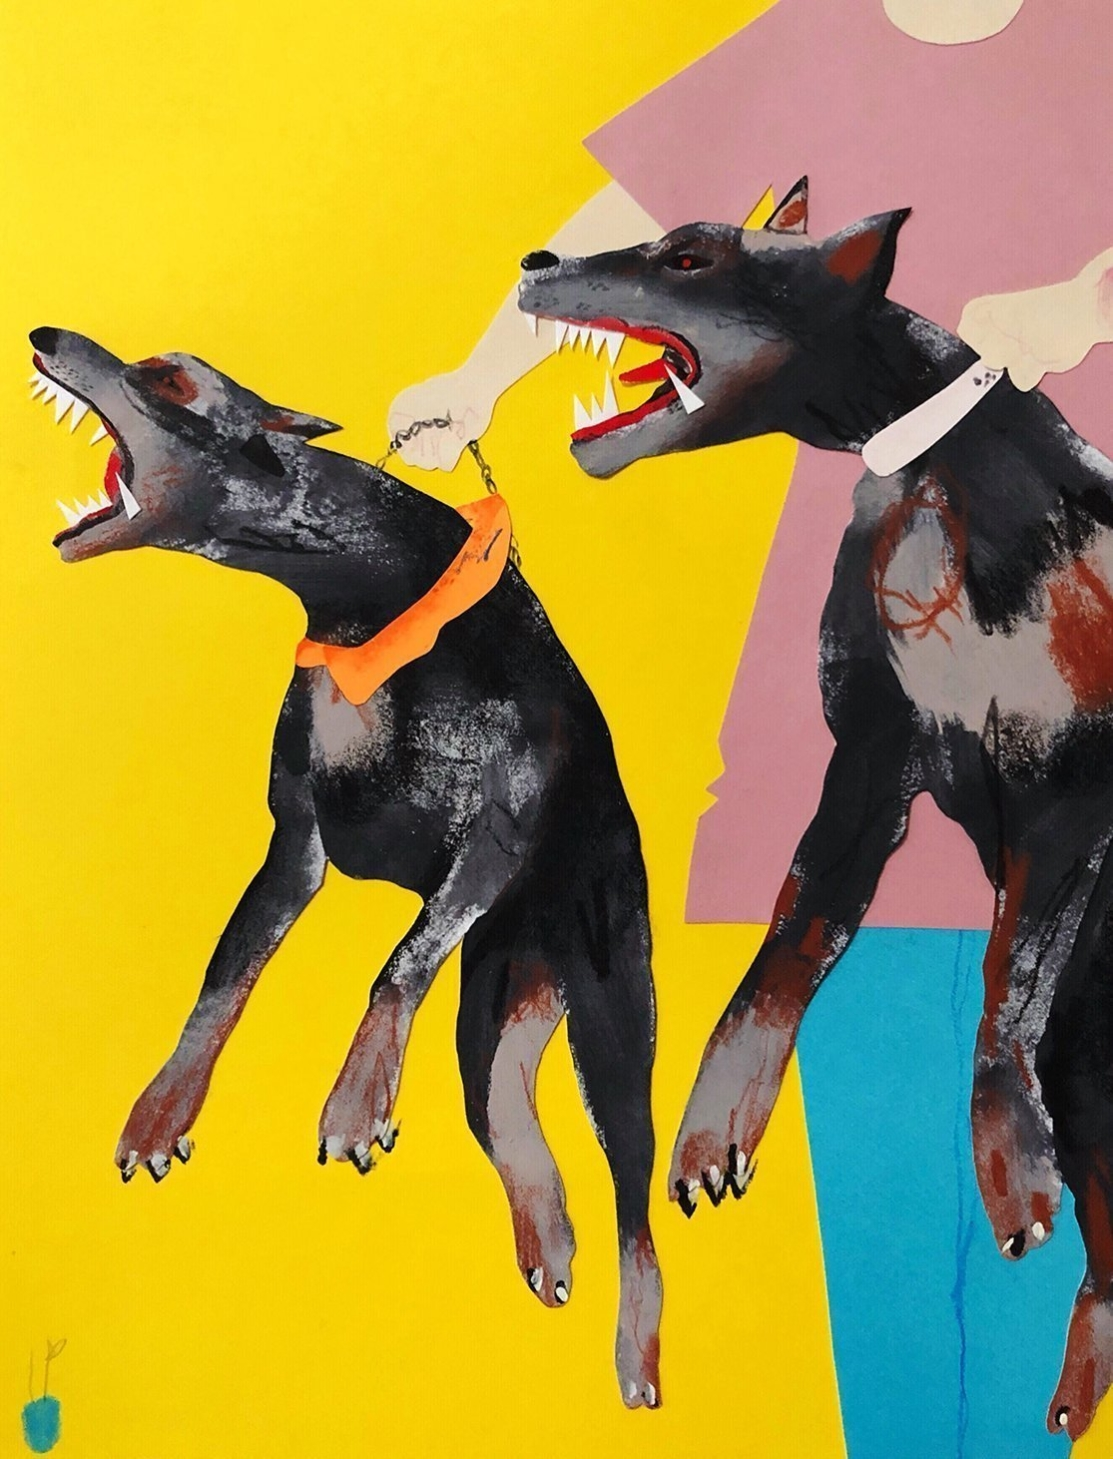 contemporary fine art print by David Heo of aggressive dogs